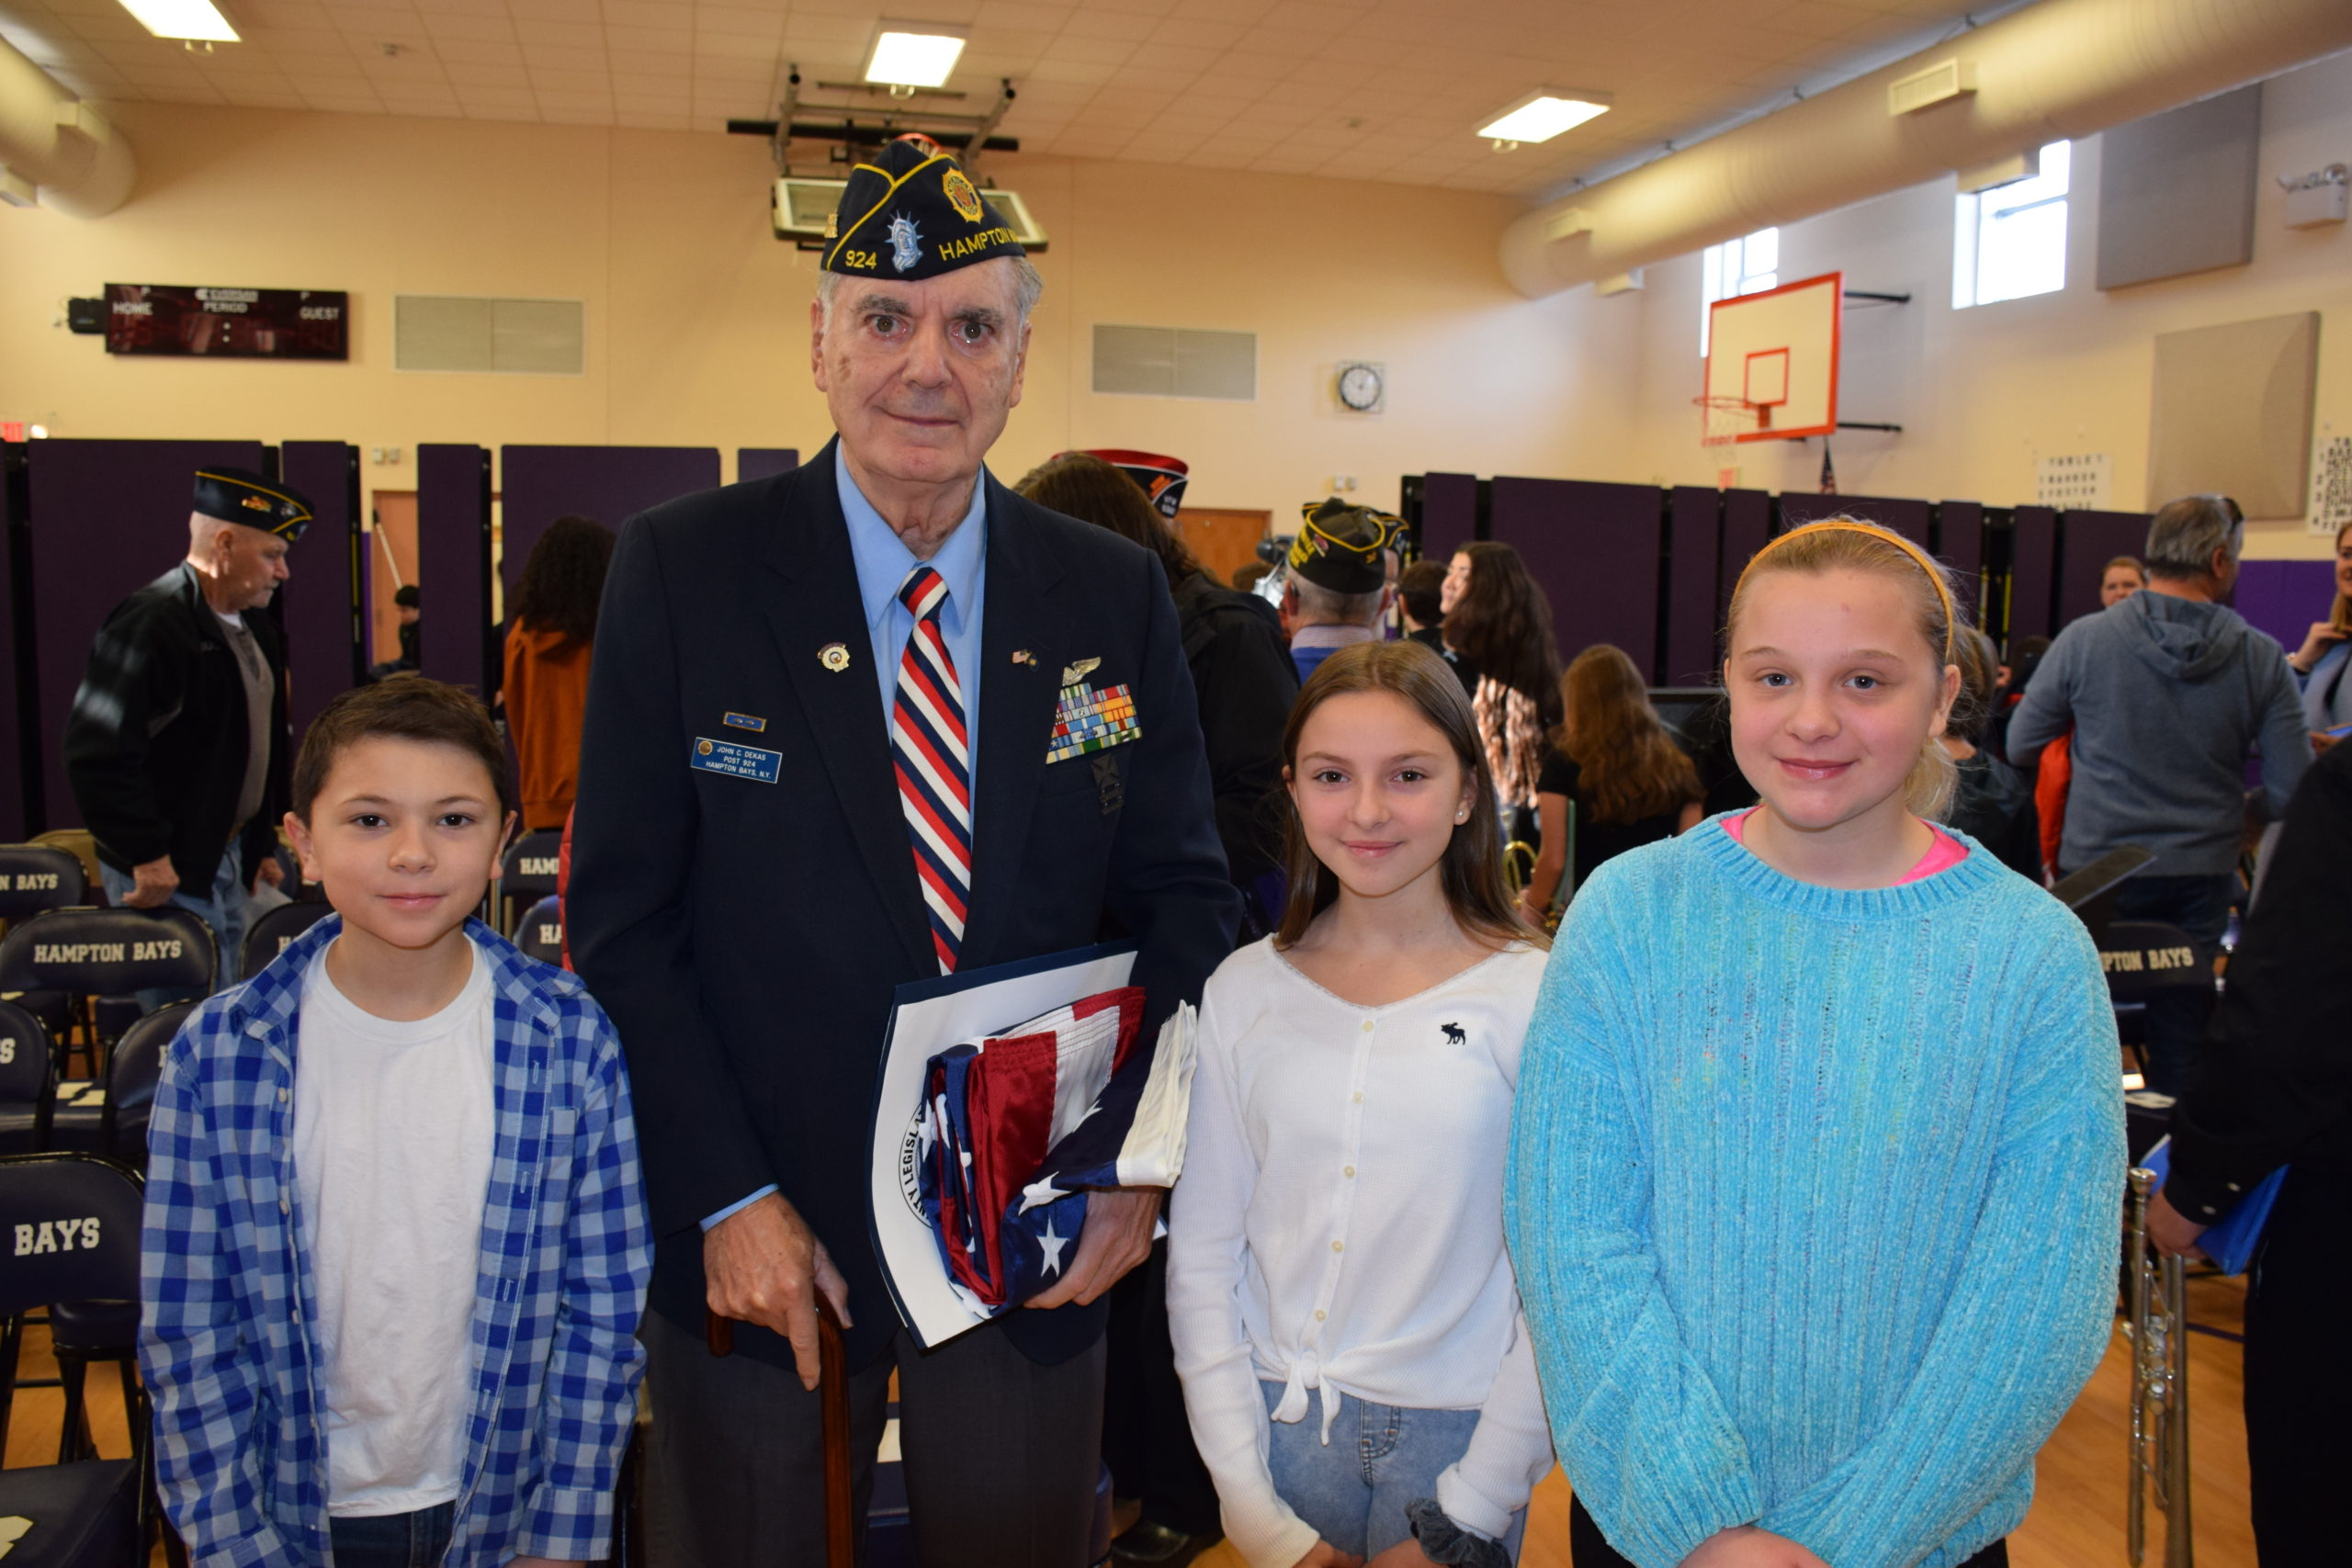 Hampton Bays students, including  Nico Carone, Keira Nappi and Adriana Tapfer, honored U.S Air Force veteran John Constantine Dekas during a flag ceremony on January 24.